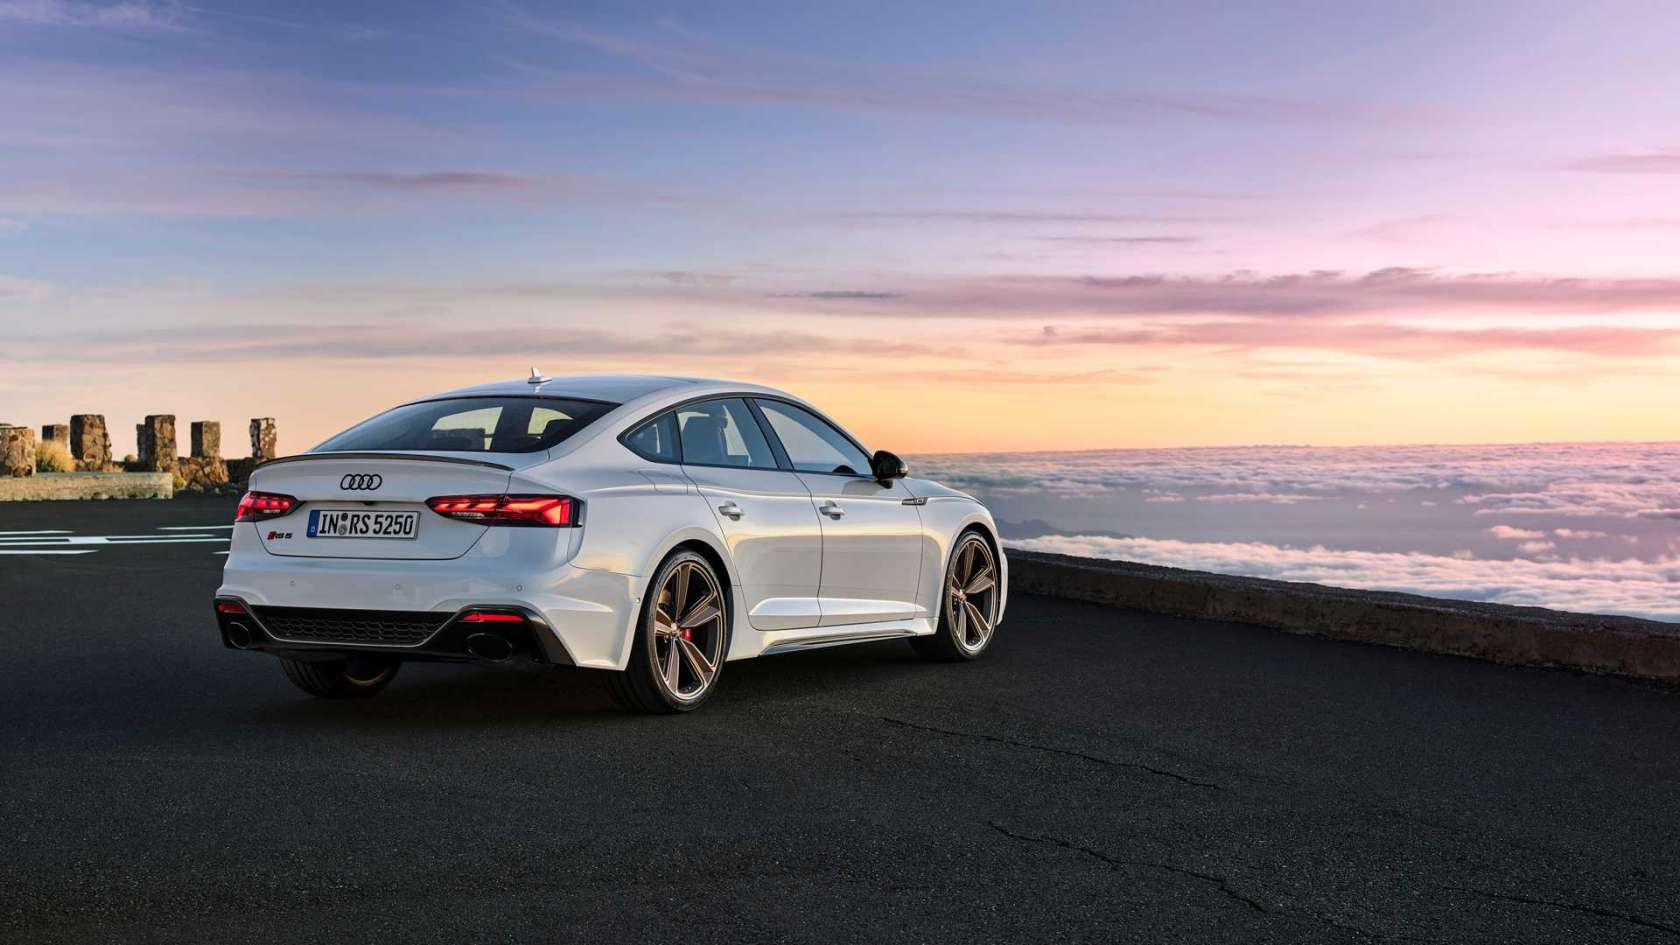 2020 Audi RS5 Coupe and Sportback arrives in Europe with redesigned styling - dlmag